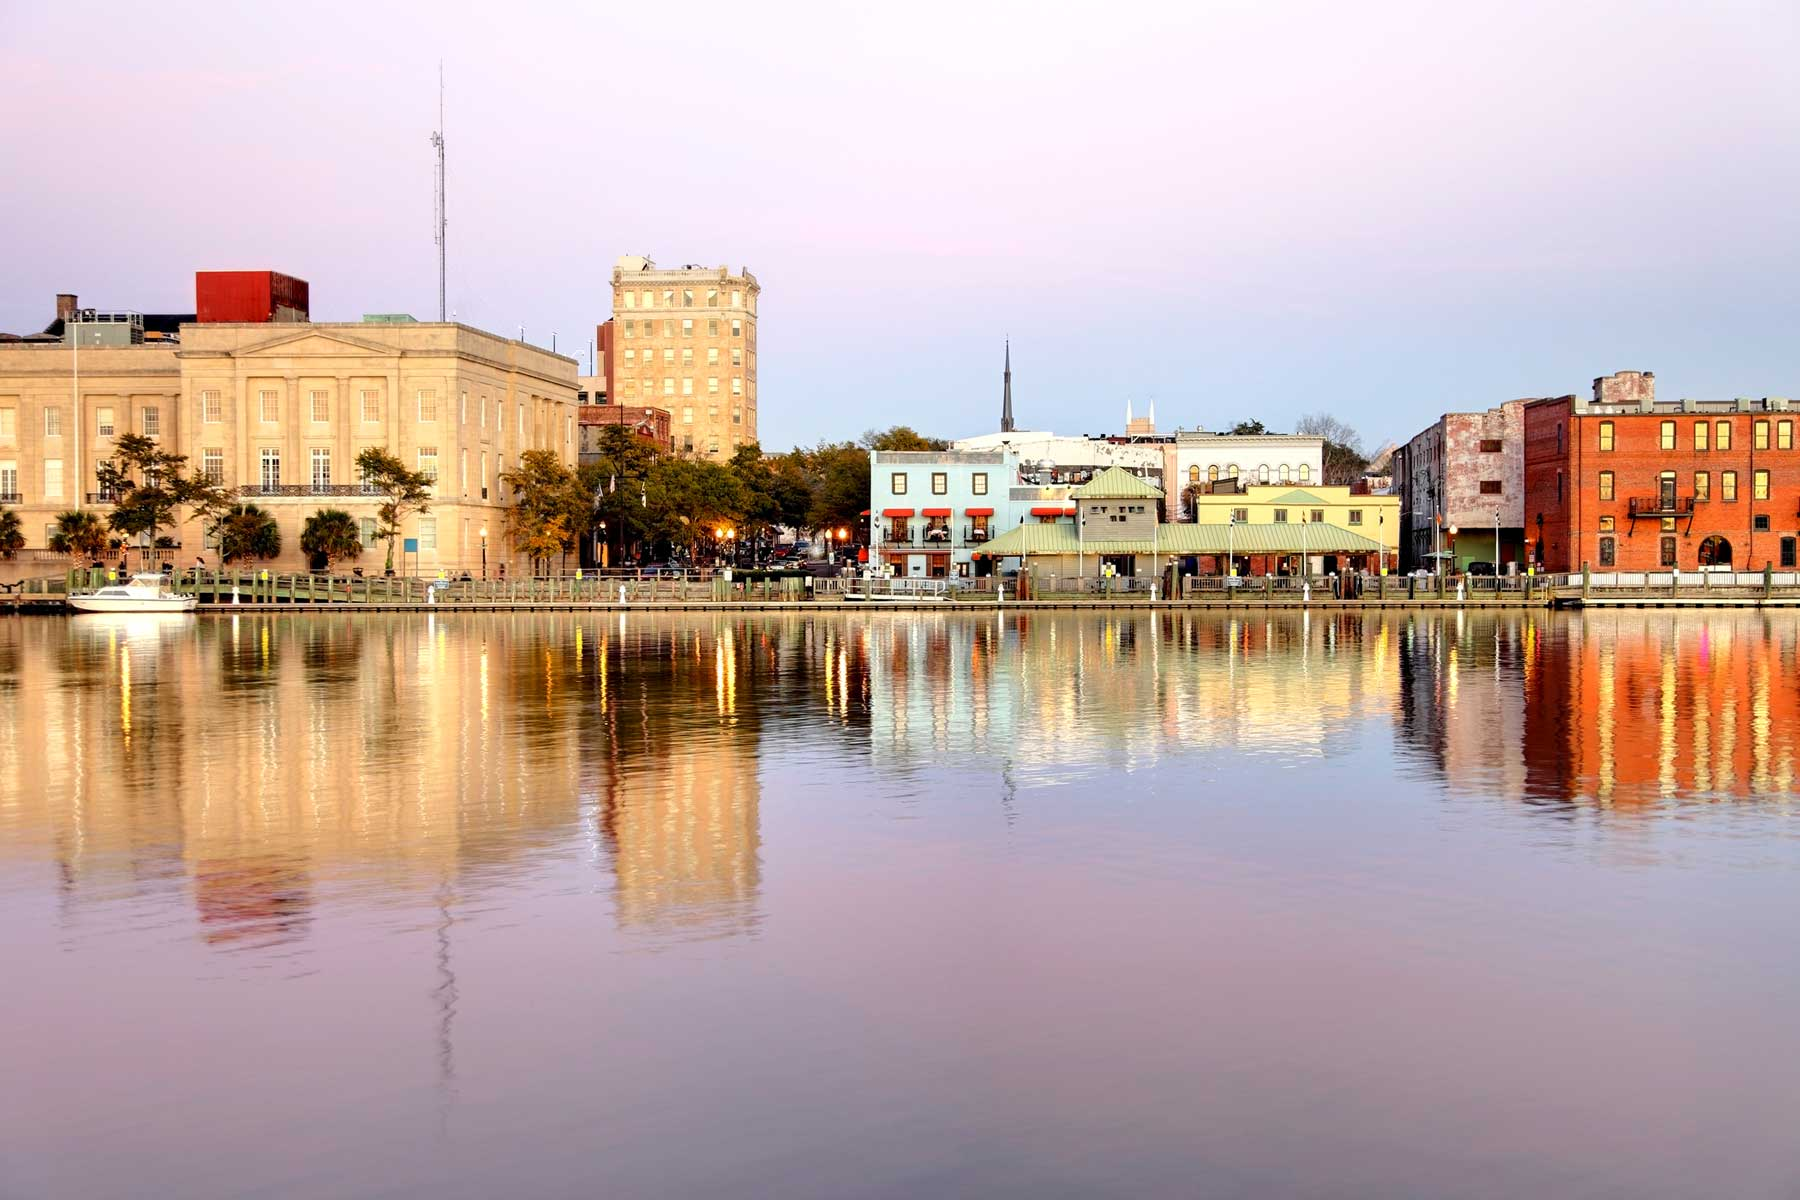 Downtown Wilmington along the banks of the Cape Fear River